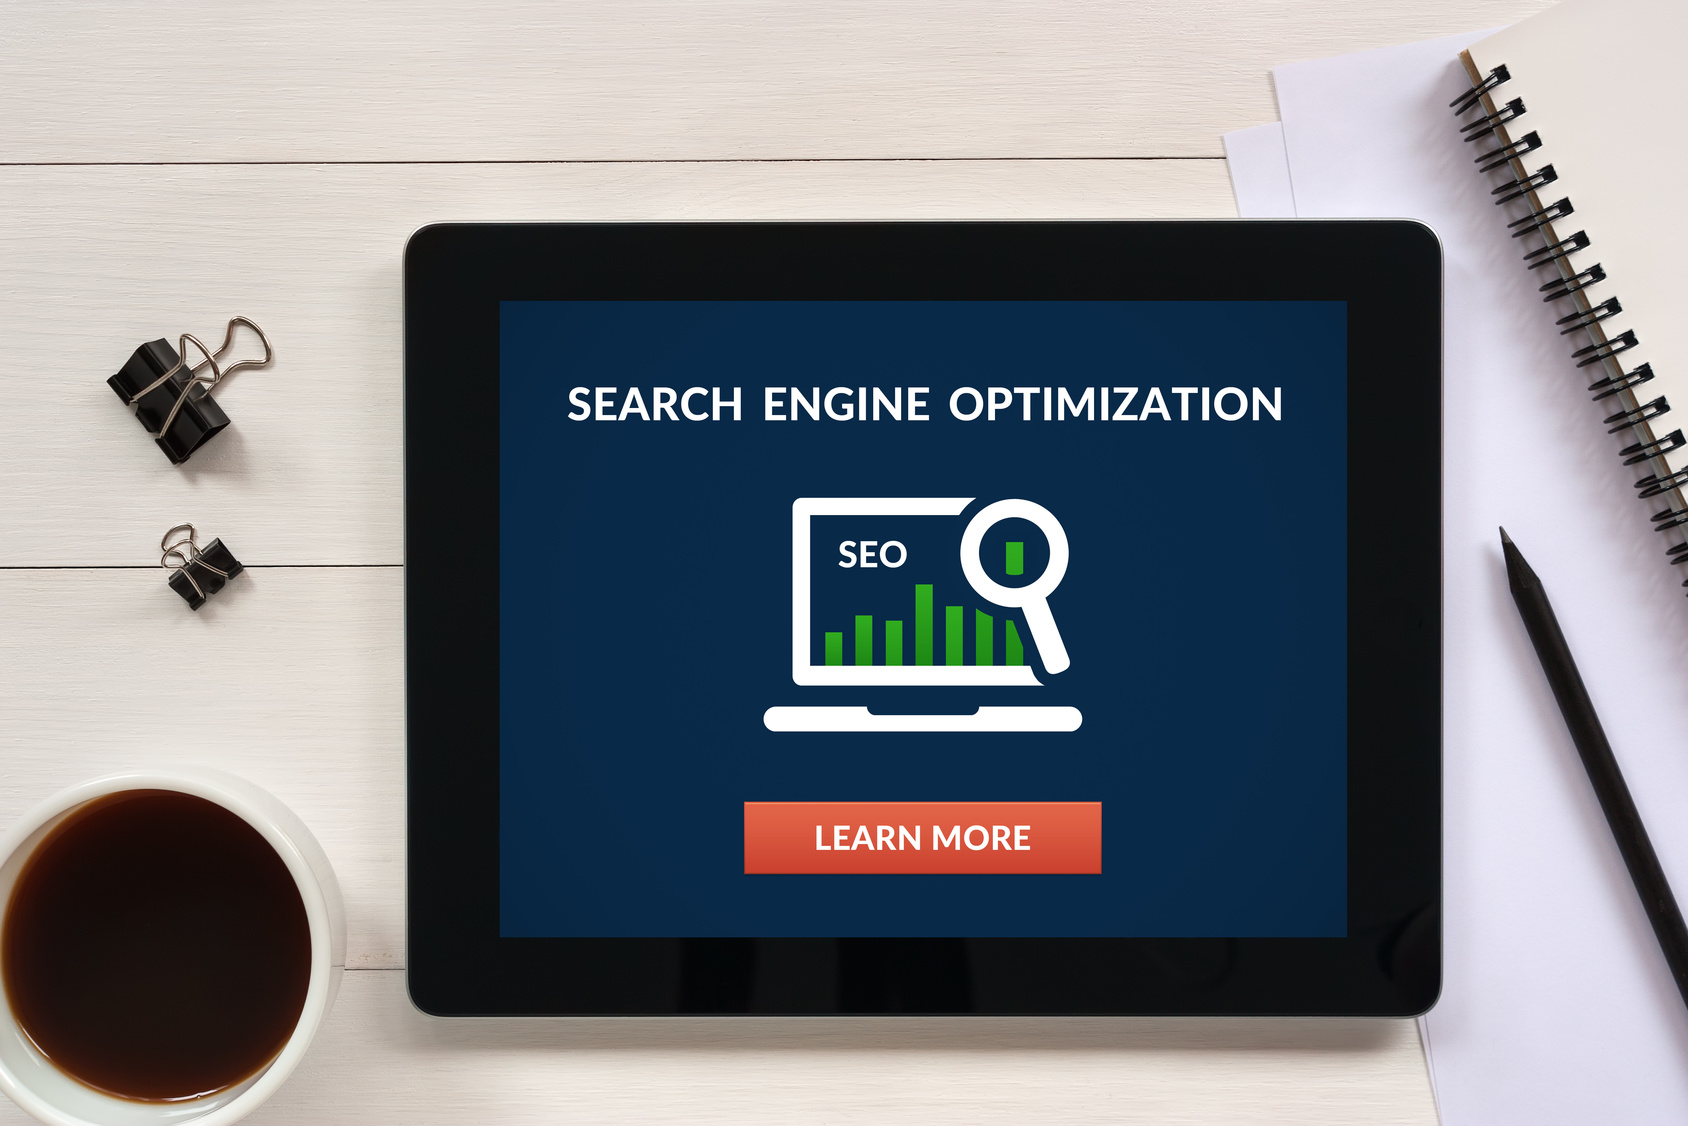 Search engine optimization predictions concept for when wanting to improve your online presence with a reliable SEO marketing company in NW Indiana.